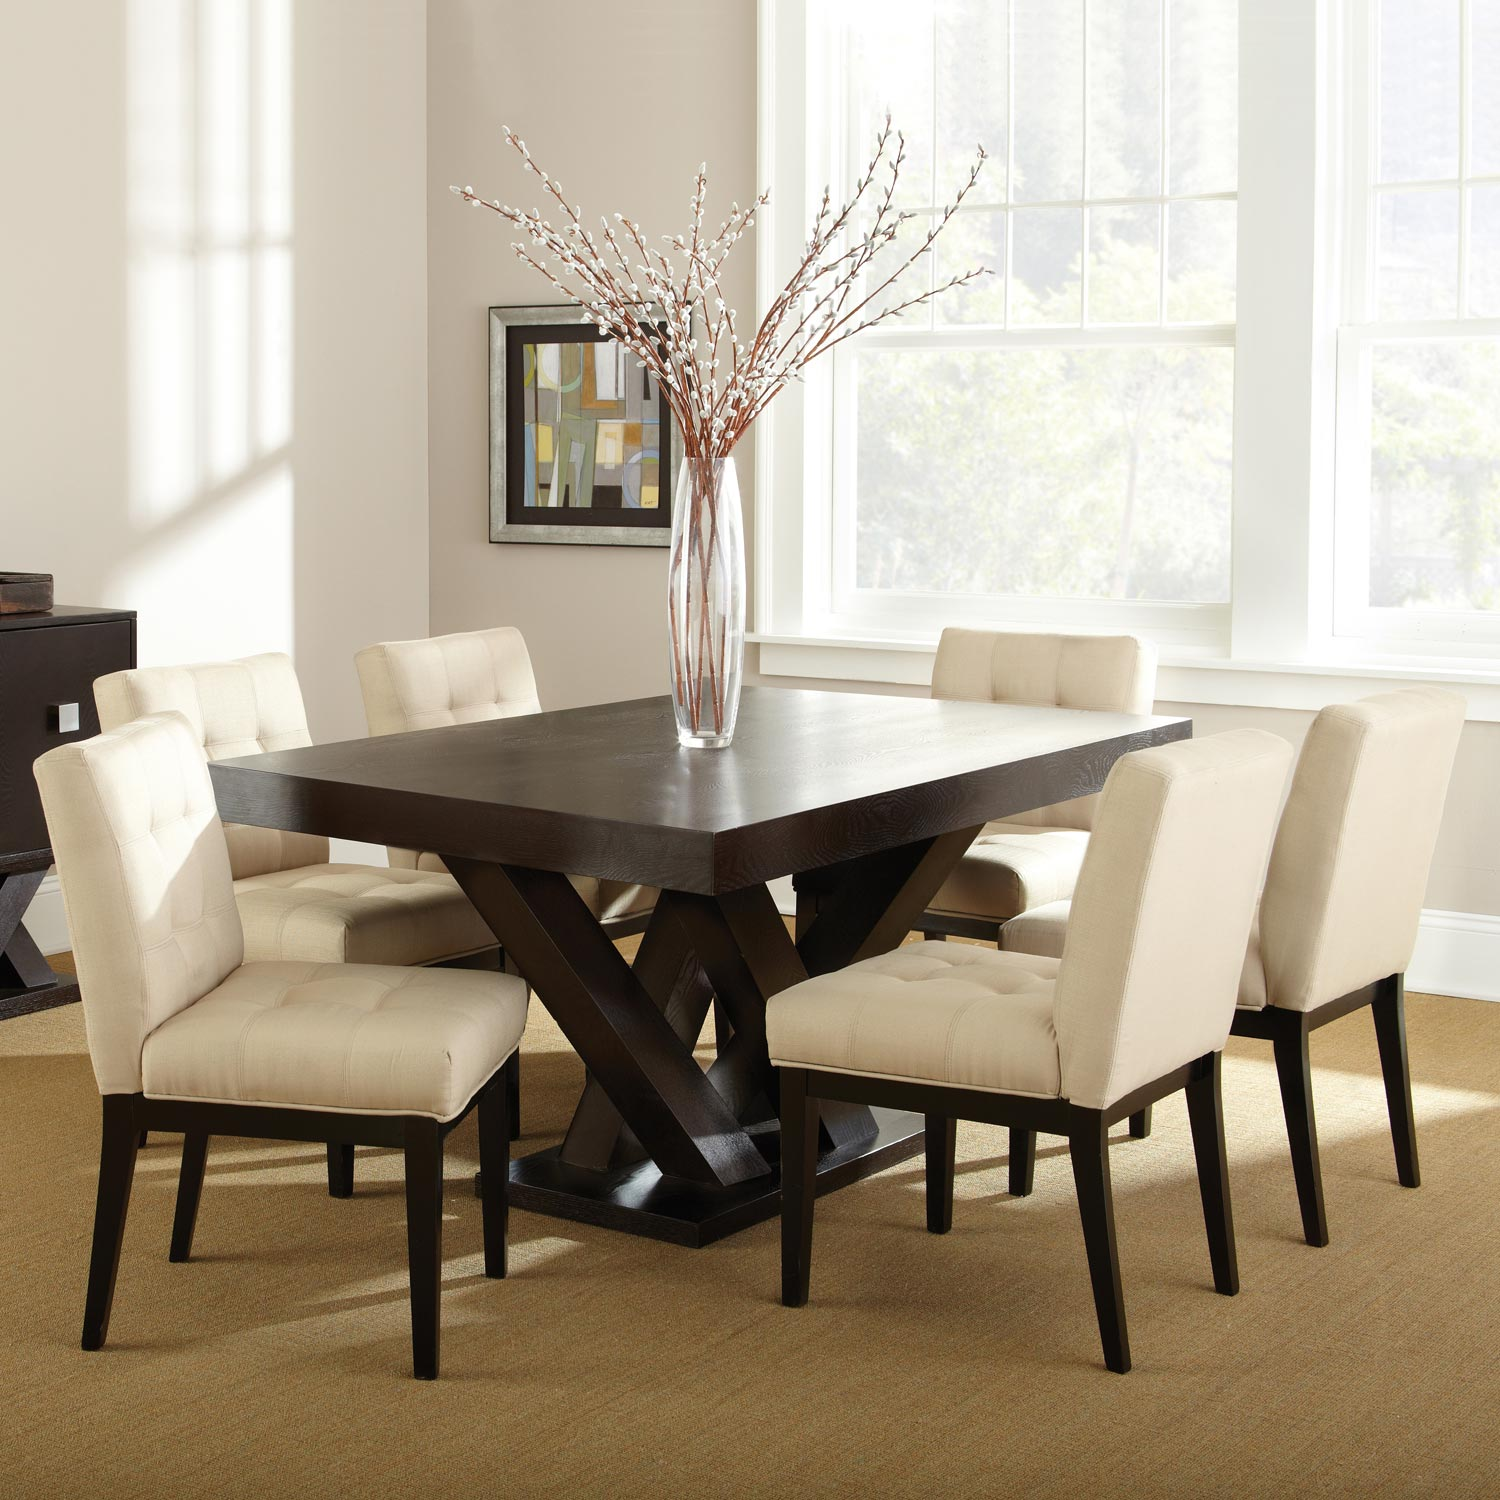 Beau Tiffany 7 Piece Dining Set   Espresso, Beige Tufted Dining Chairs    SSC TF500 ...